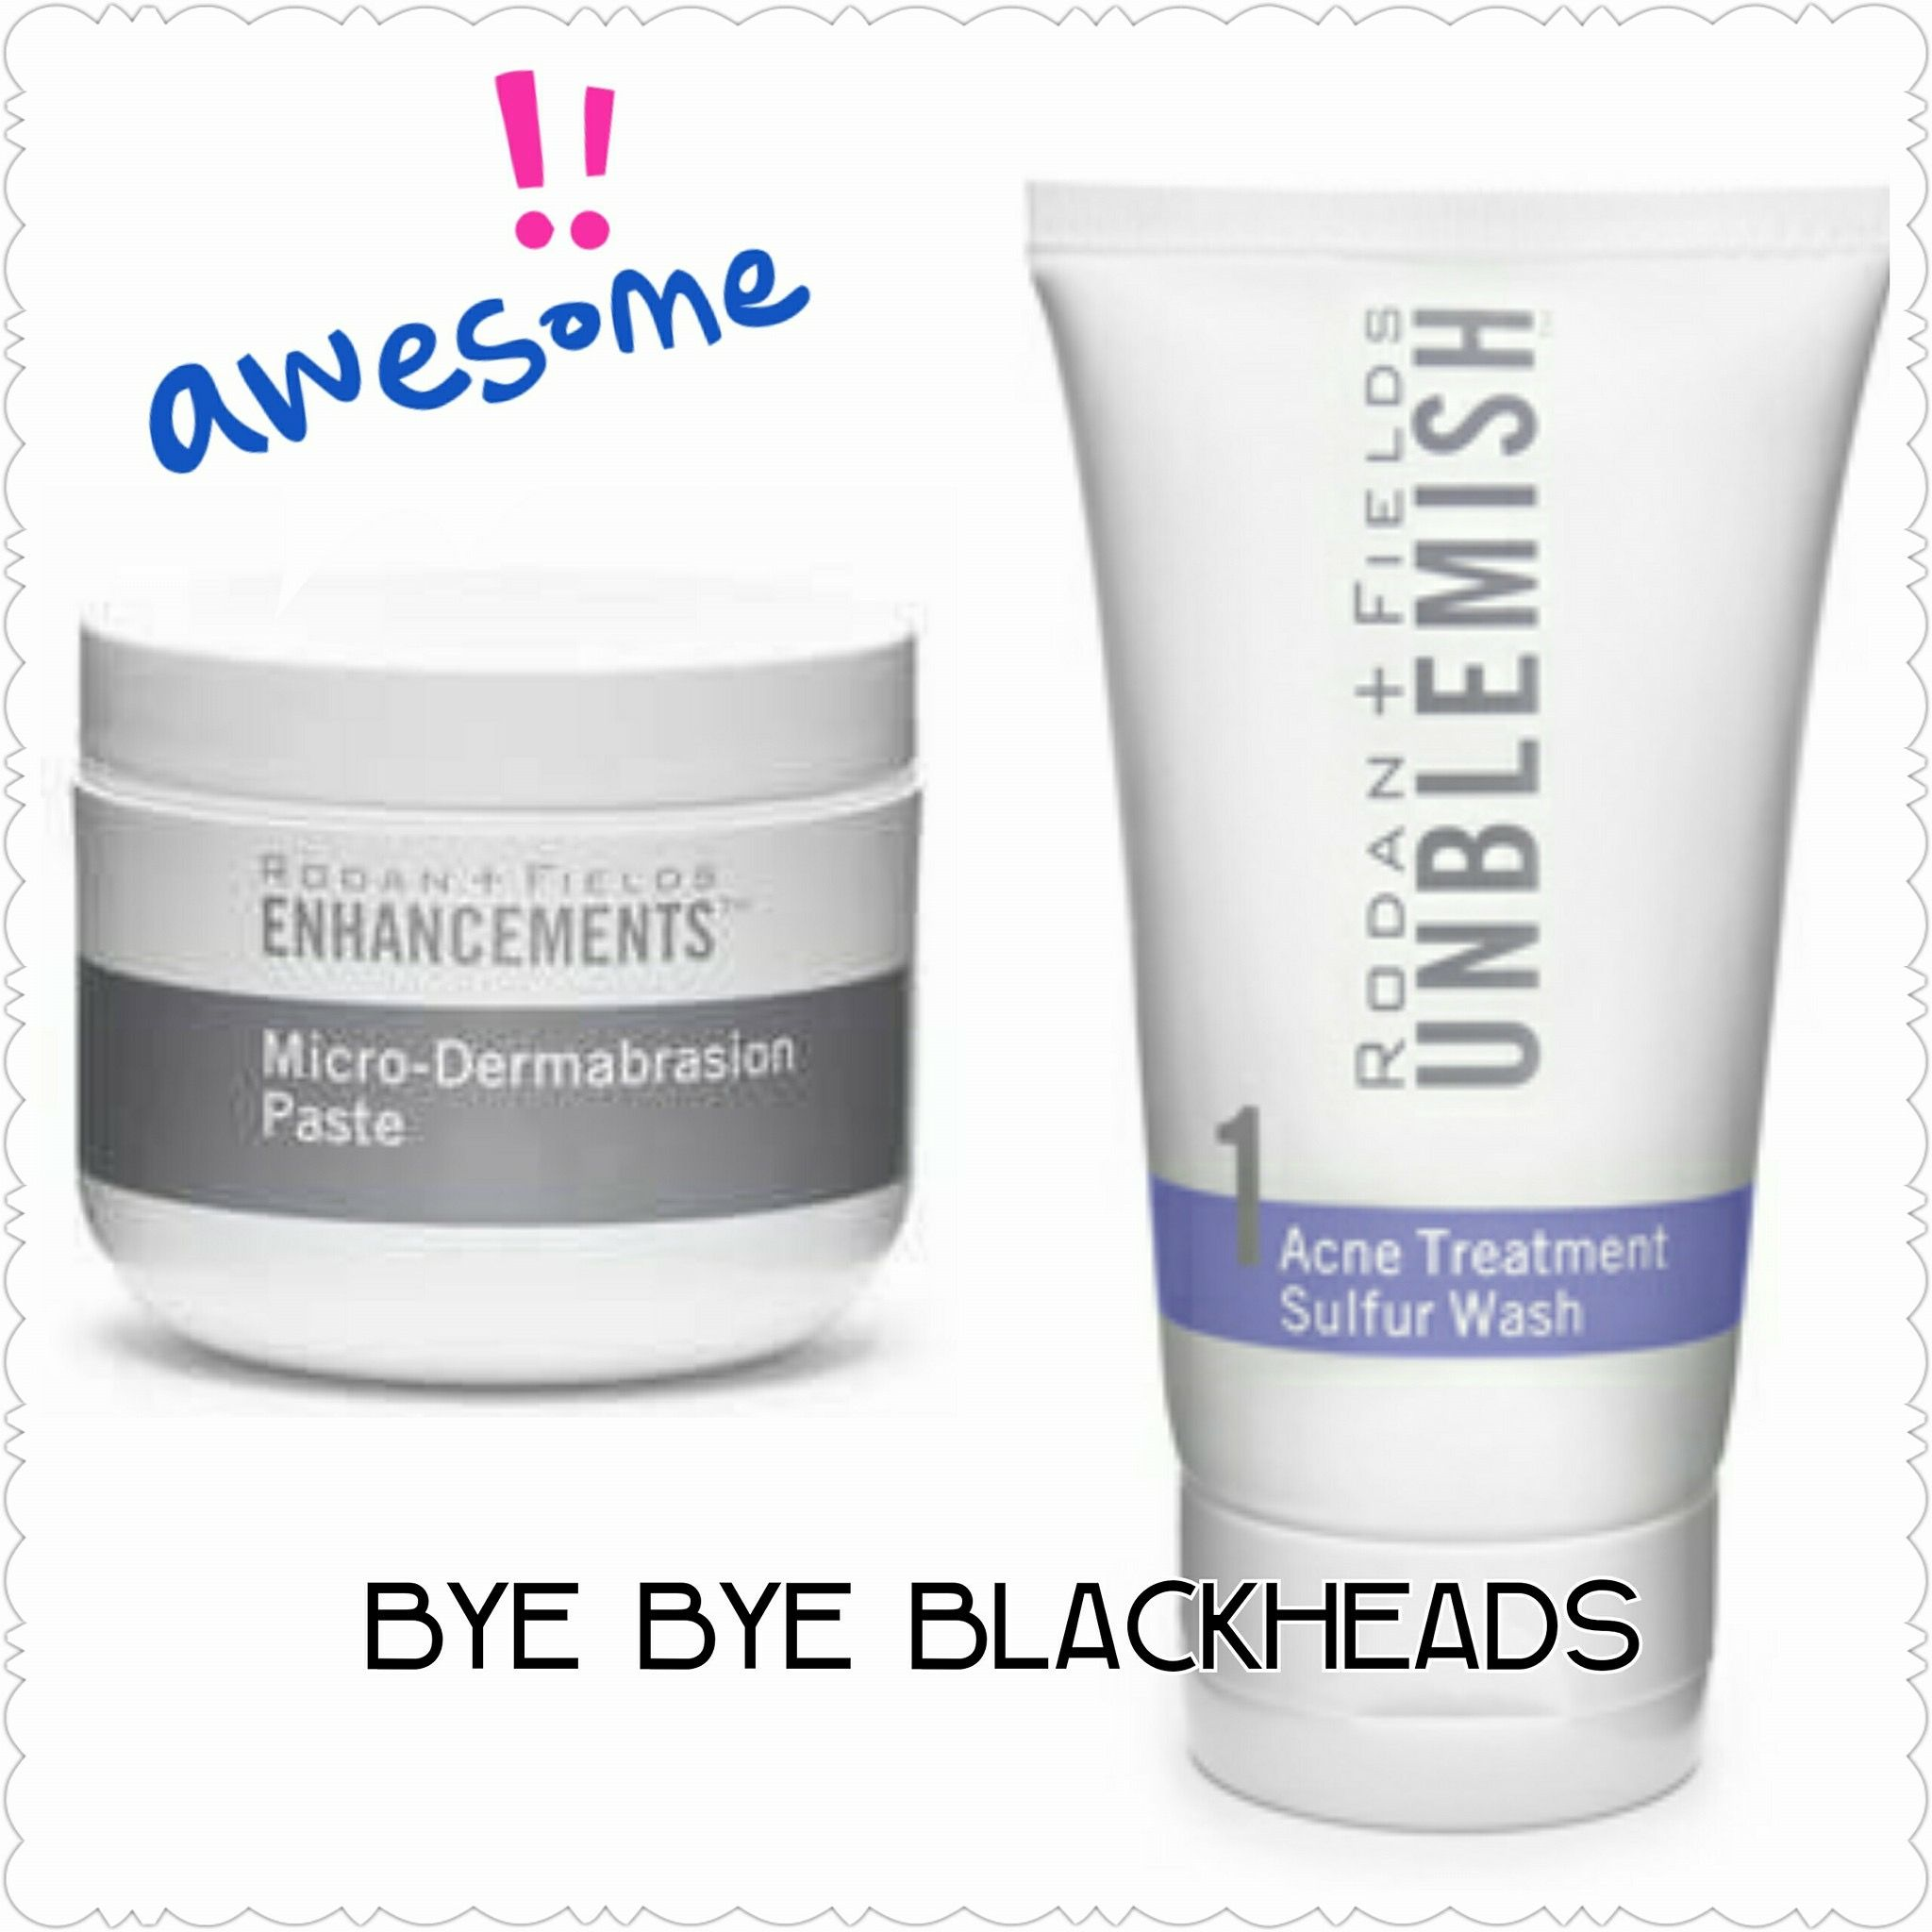 Having trouble with blackheads? I know, gross right? Well I have the solution for you straight from one of our on-call nurses!